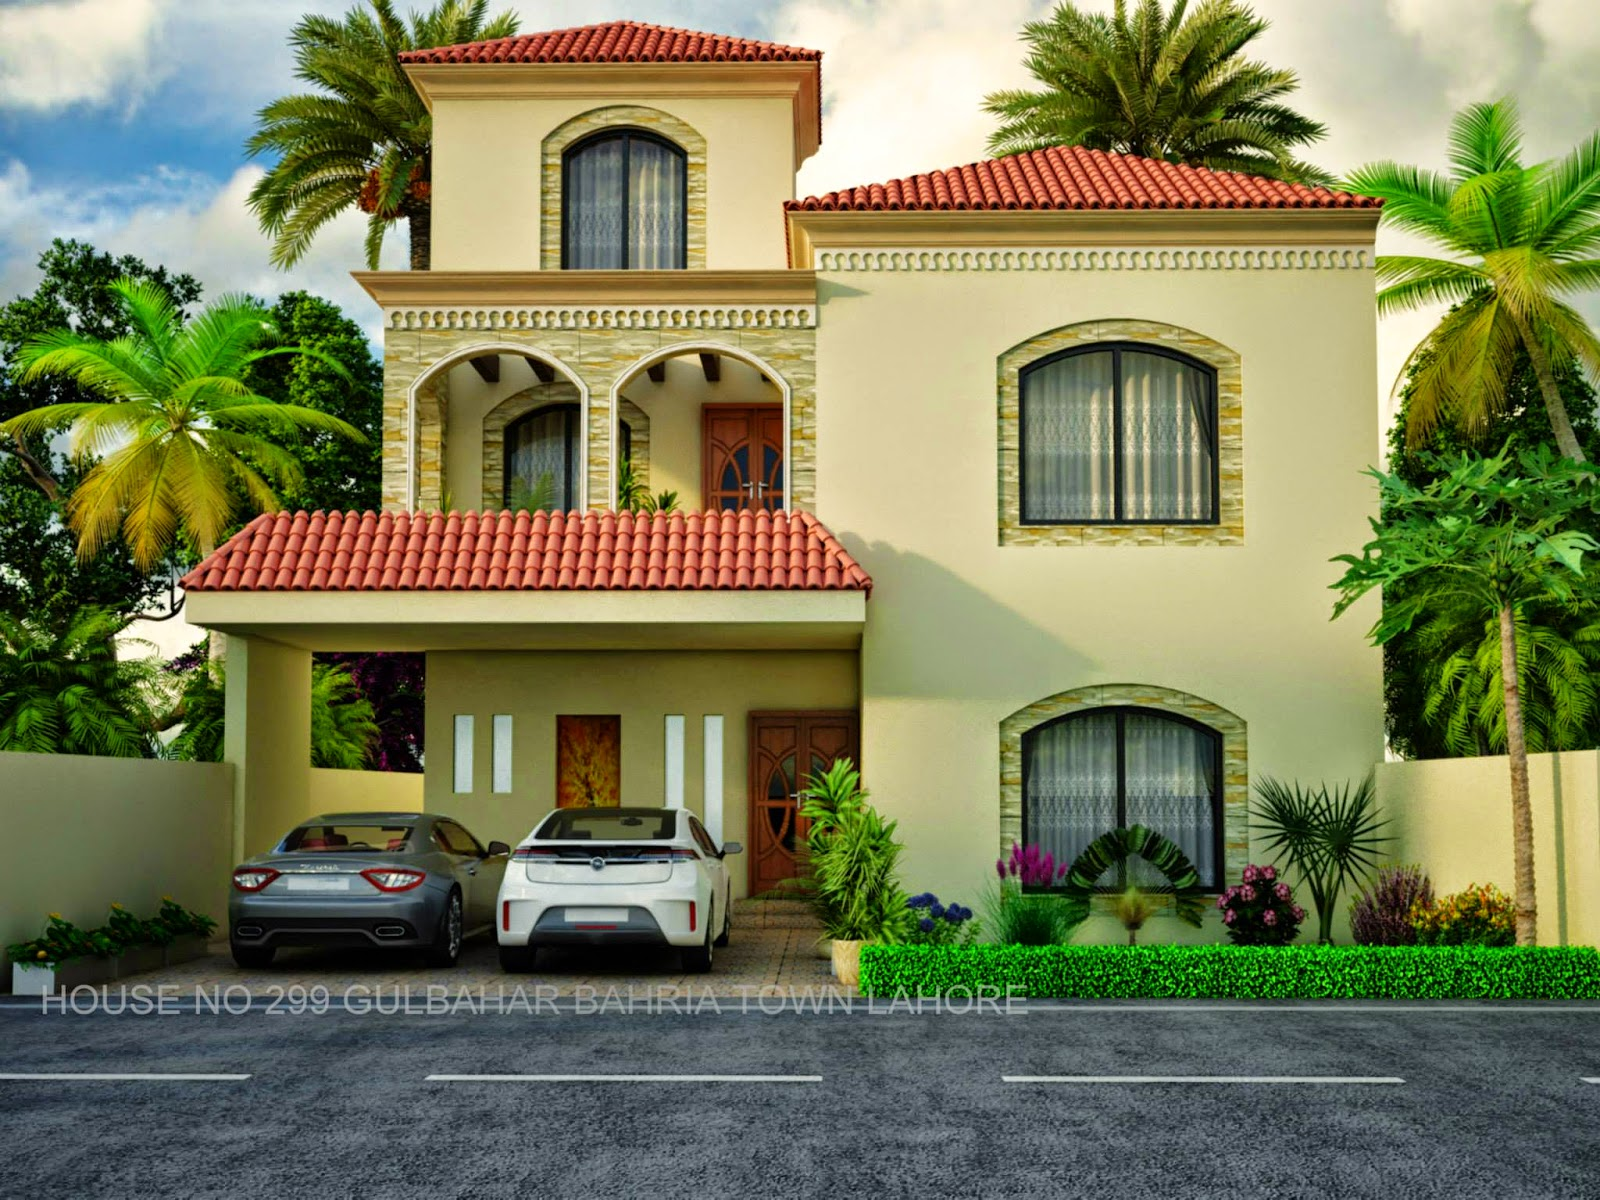 Modern Creative Home Balcony Design 2016 additionally Case ake likewise Cowboy House 28 additionally River Rock Siding Landscape Mediterranean With Water Fountain Stone Paver Pathway together with 219843. on contemporary design house